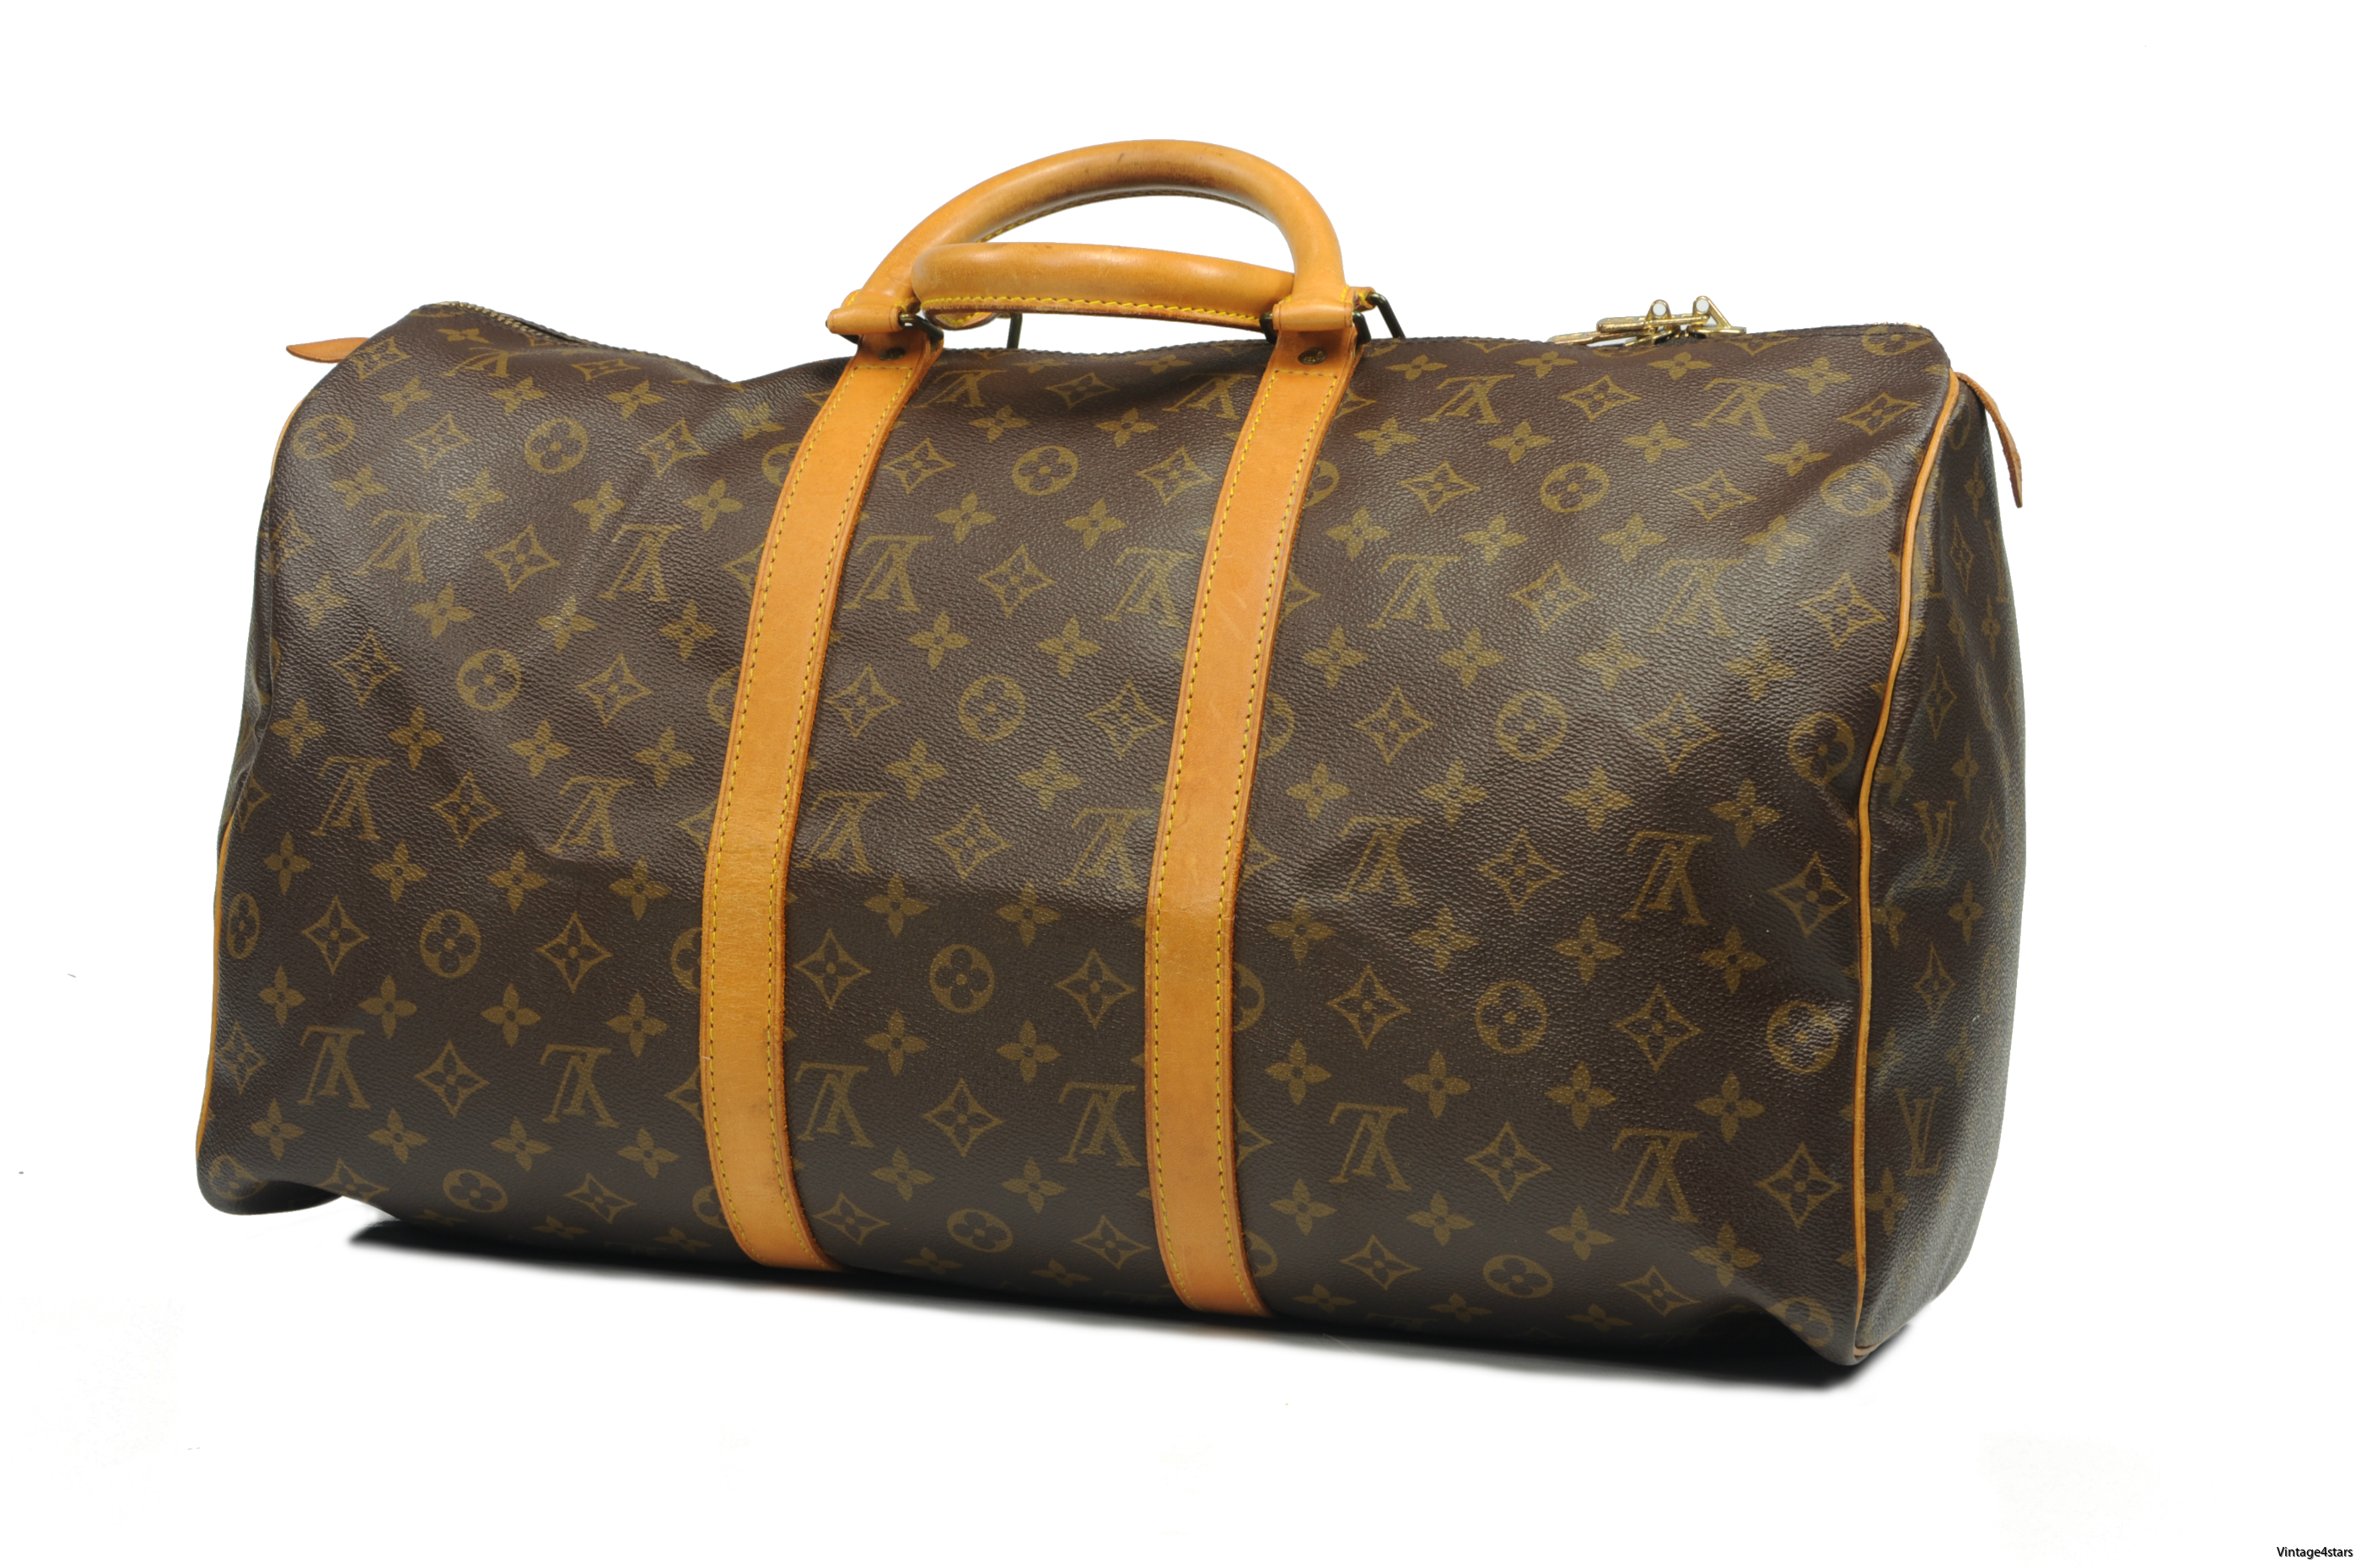 Louis vuitton Keepall 45 200